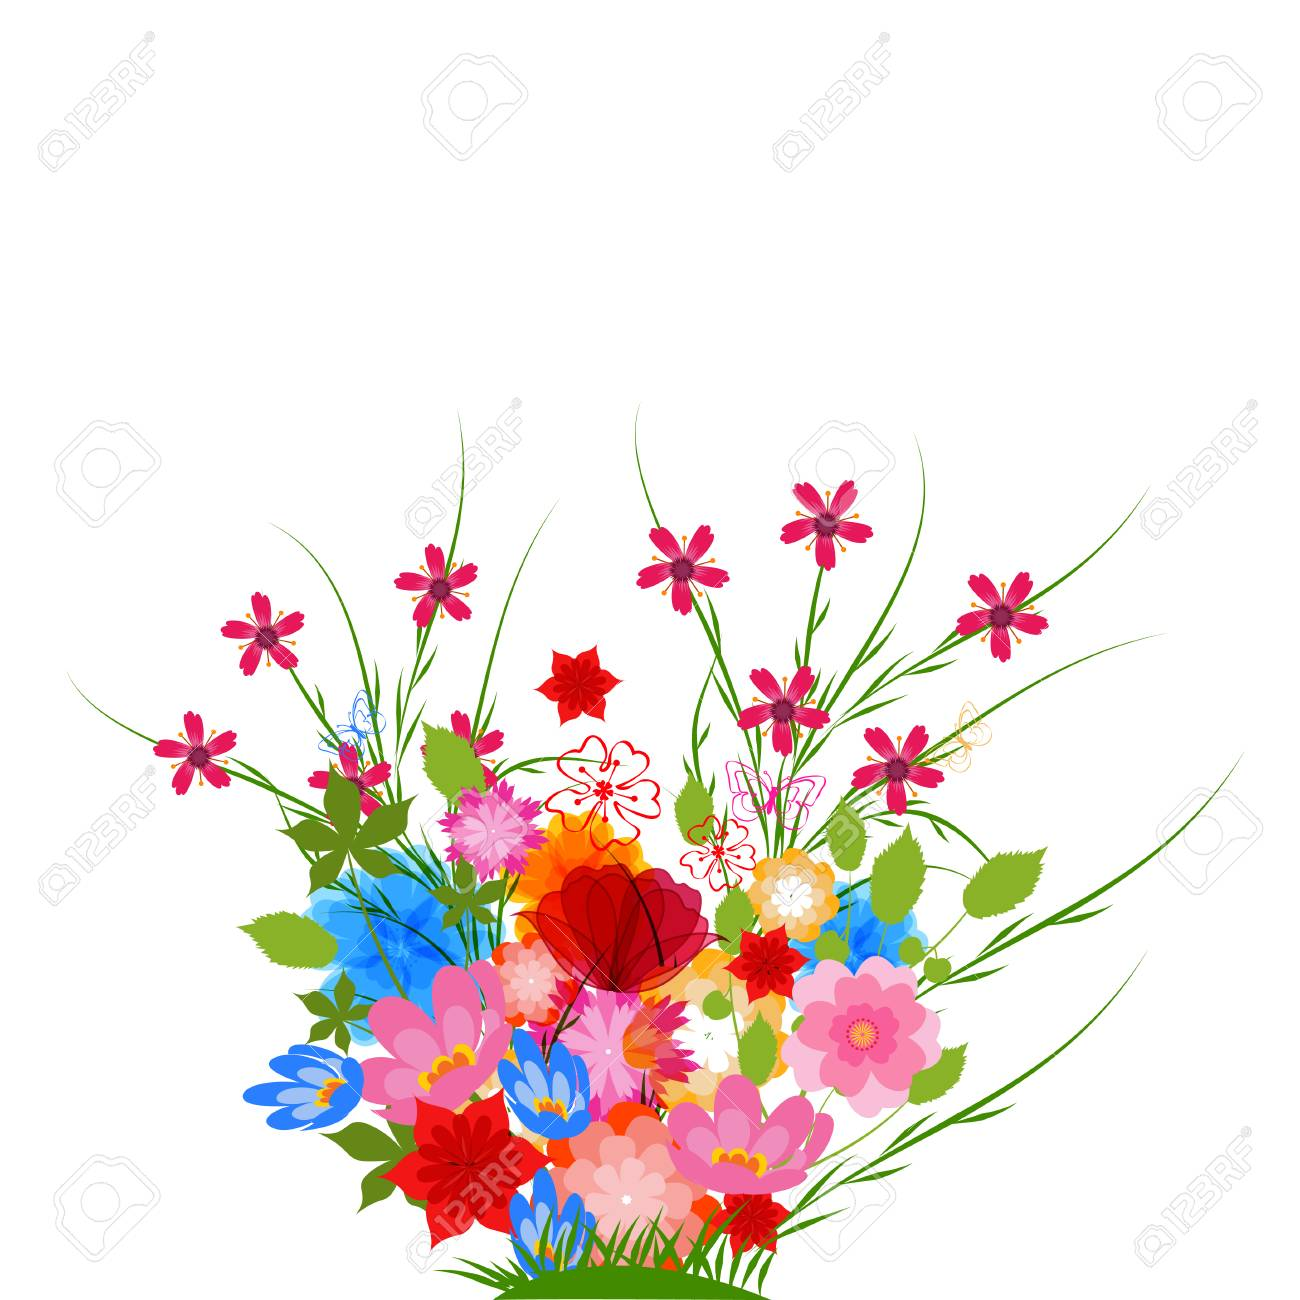 Spring Flowers Background Royalty Free Cliparts Vectors And Stock